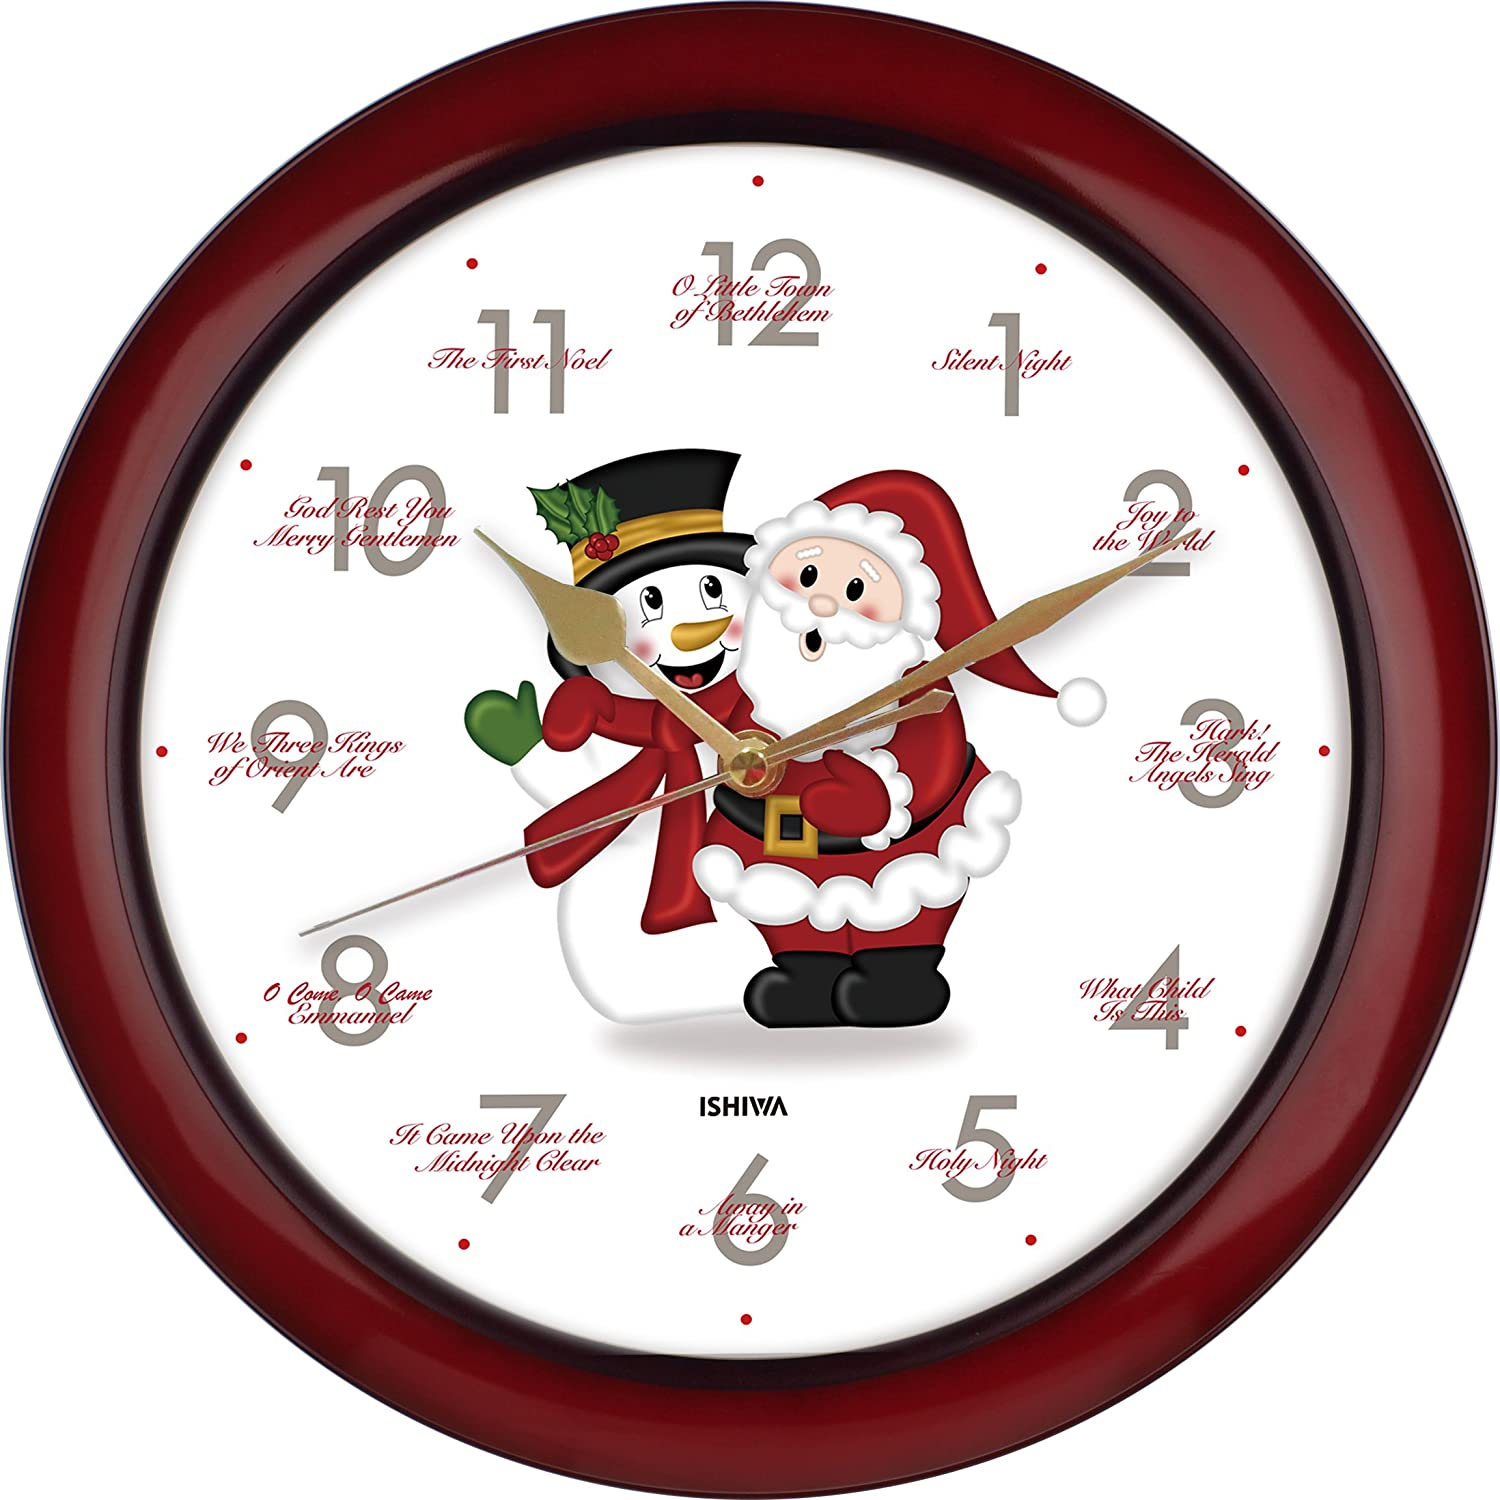 Amazon splendid 14 inch 12 song of carols of christmas warm amazon splendid 14 inch 12 song of carols of christmas warm santa claus snowman melody wall clock sweep silent quartz home wall deco clock ss amipublicfo Images